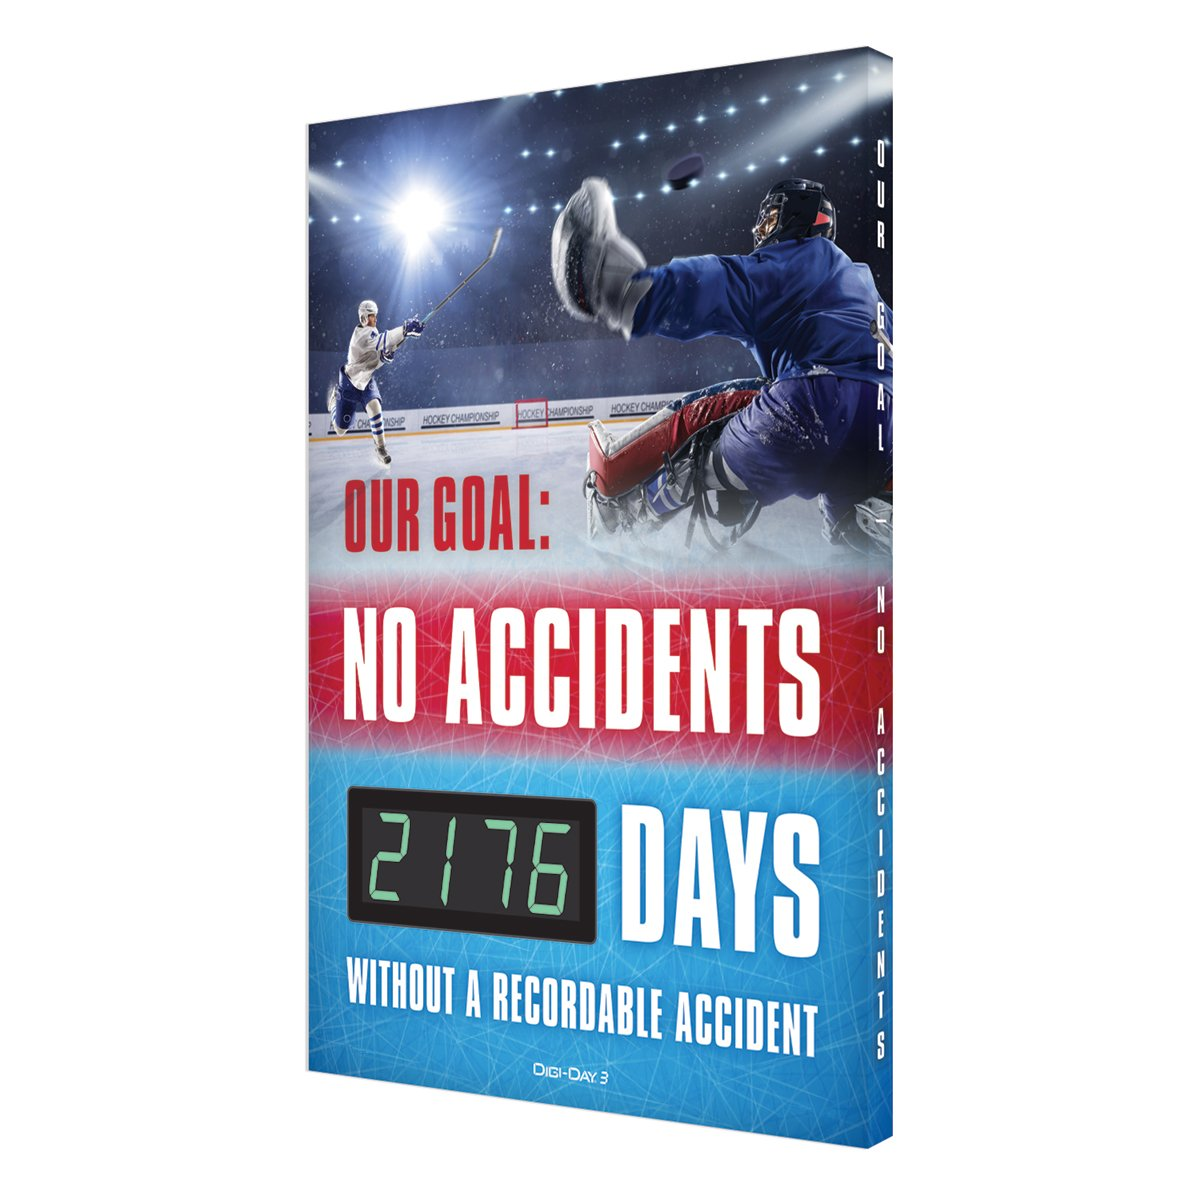 Make A Goal No Accidents _ Days Without Recordable (Updated) Digi-Day 3